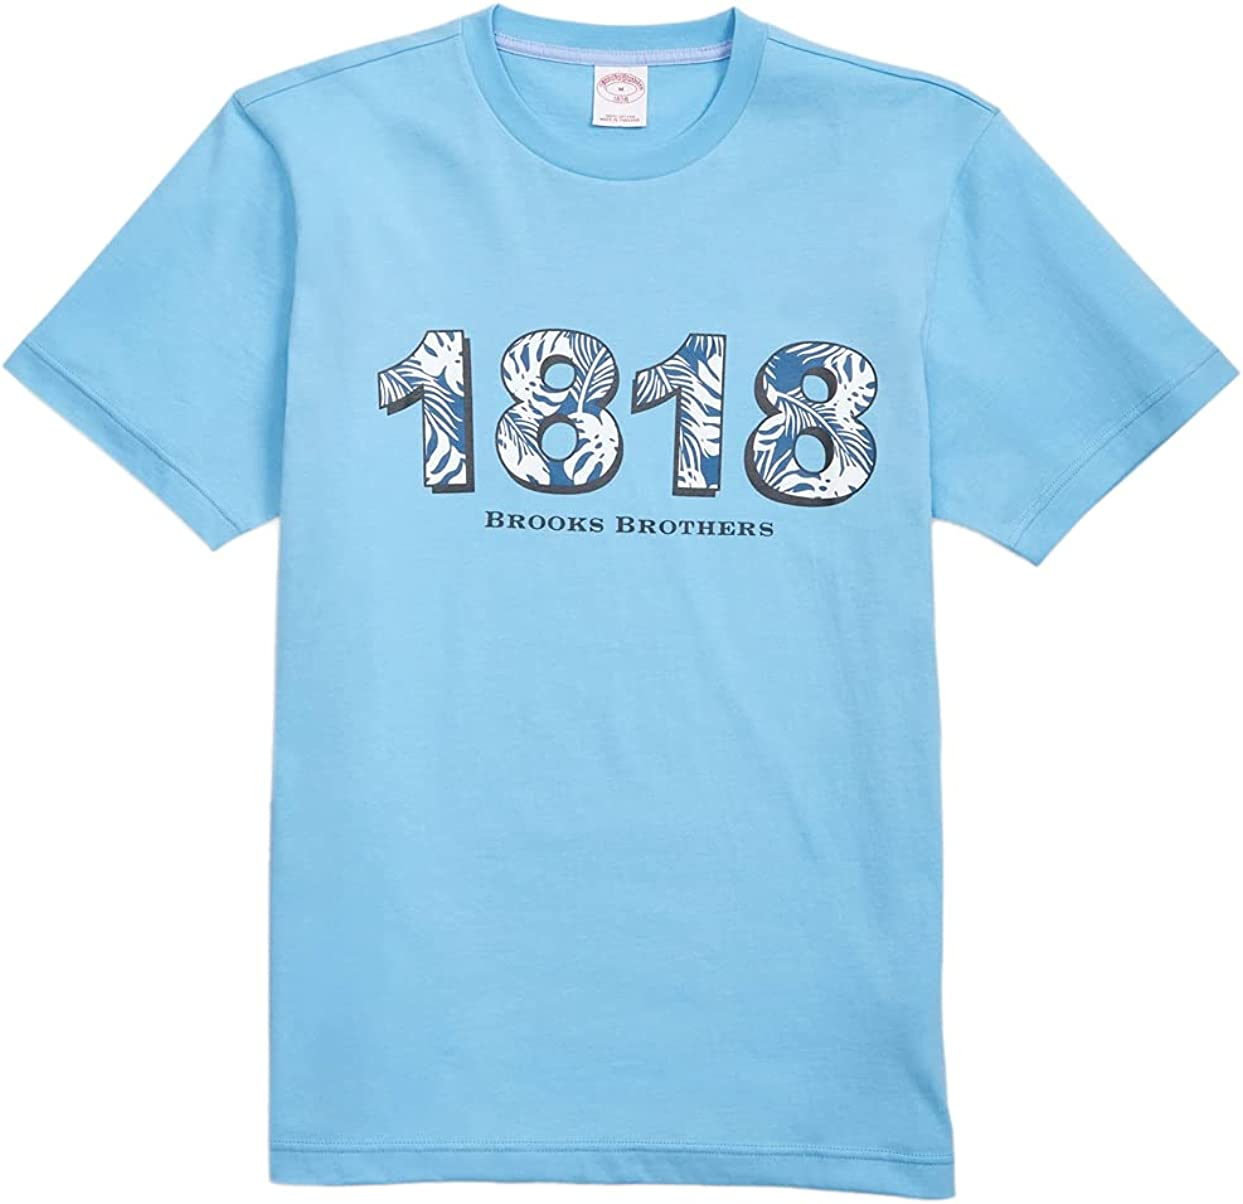 Brooks Brothers Men's 159928 Tropical 1818 Graphic Short Sleeve Tee T-Shirt Light Blue